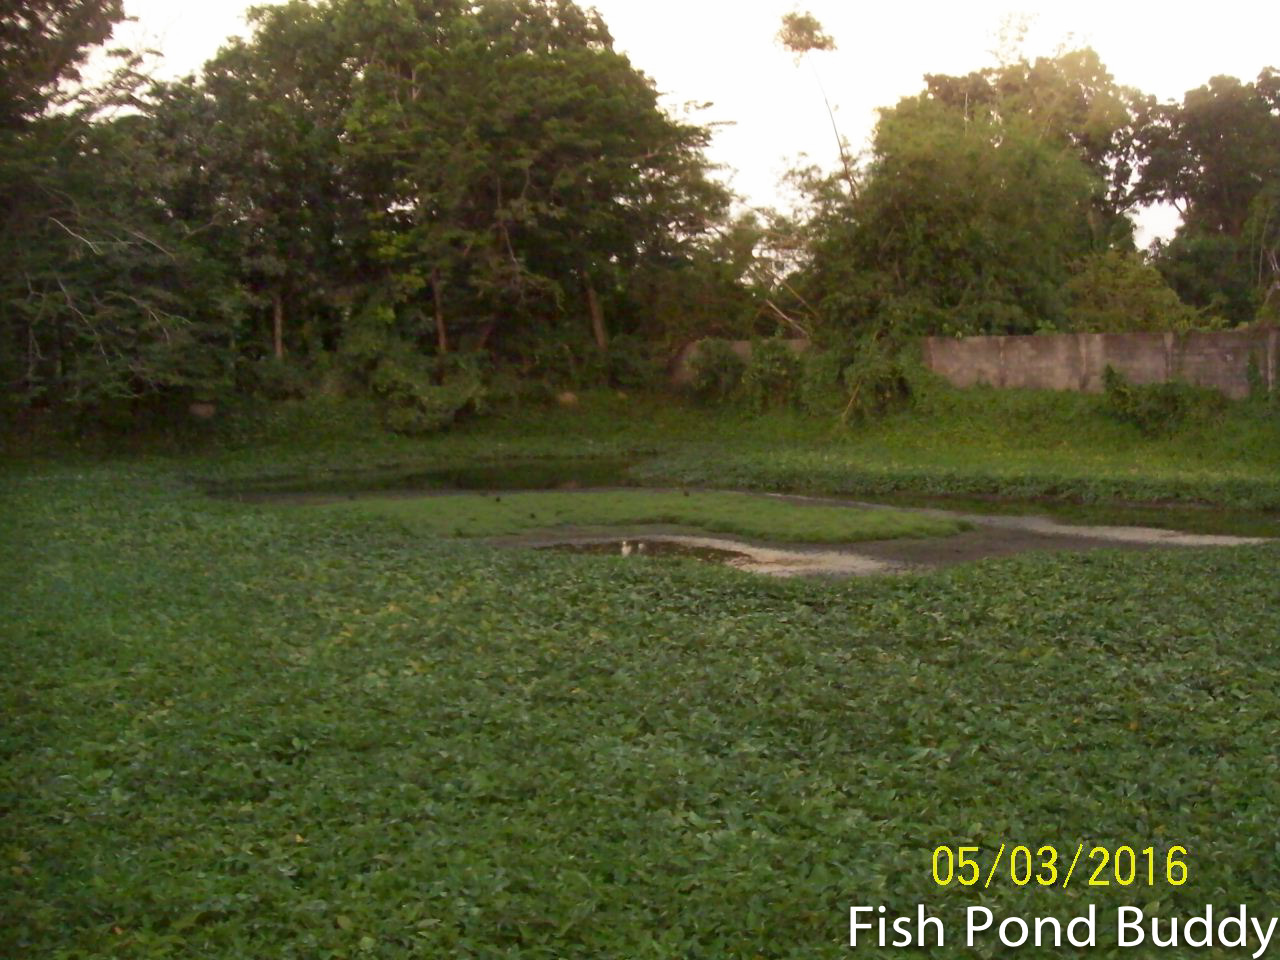 Fish Pond Buddy How To Catch And Cook Sikling Plain Bush Hen At The Fish Farm